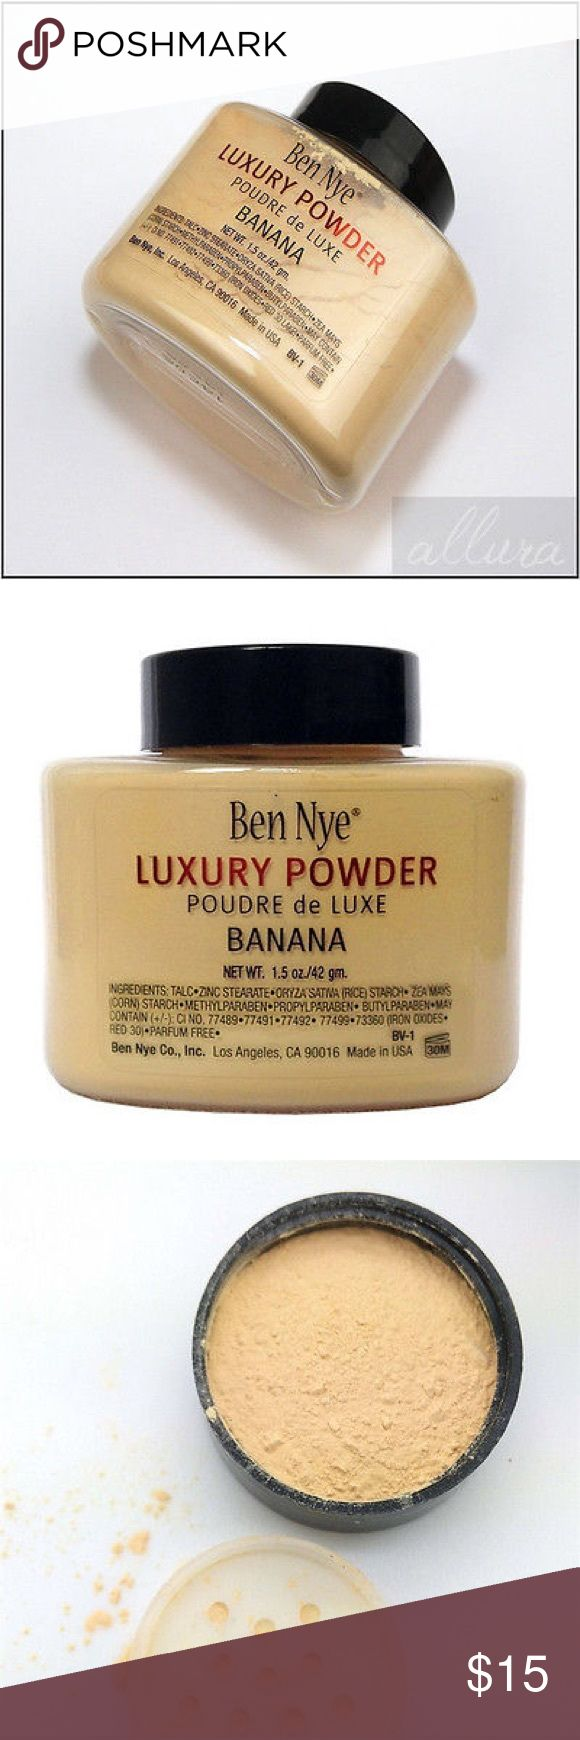 Ben Nye Luxury Powder Banana NEW SEALED Top is still sealed. Ben nye powder is loose setting powder. Perfect for under eye area. Ben Nye Makeup Face Powder #makeupvanity